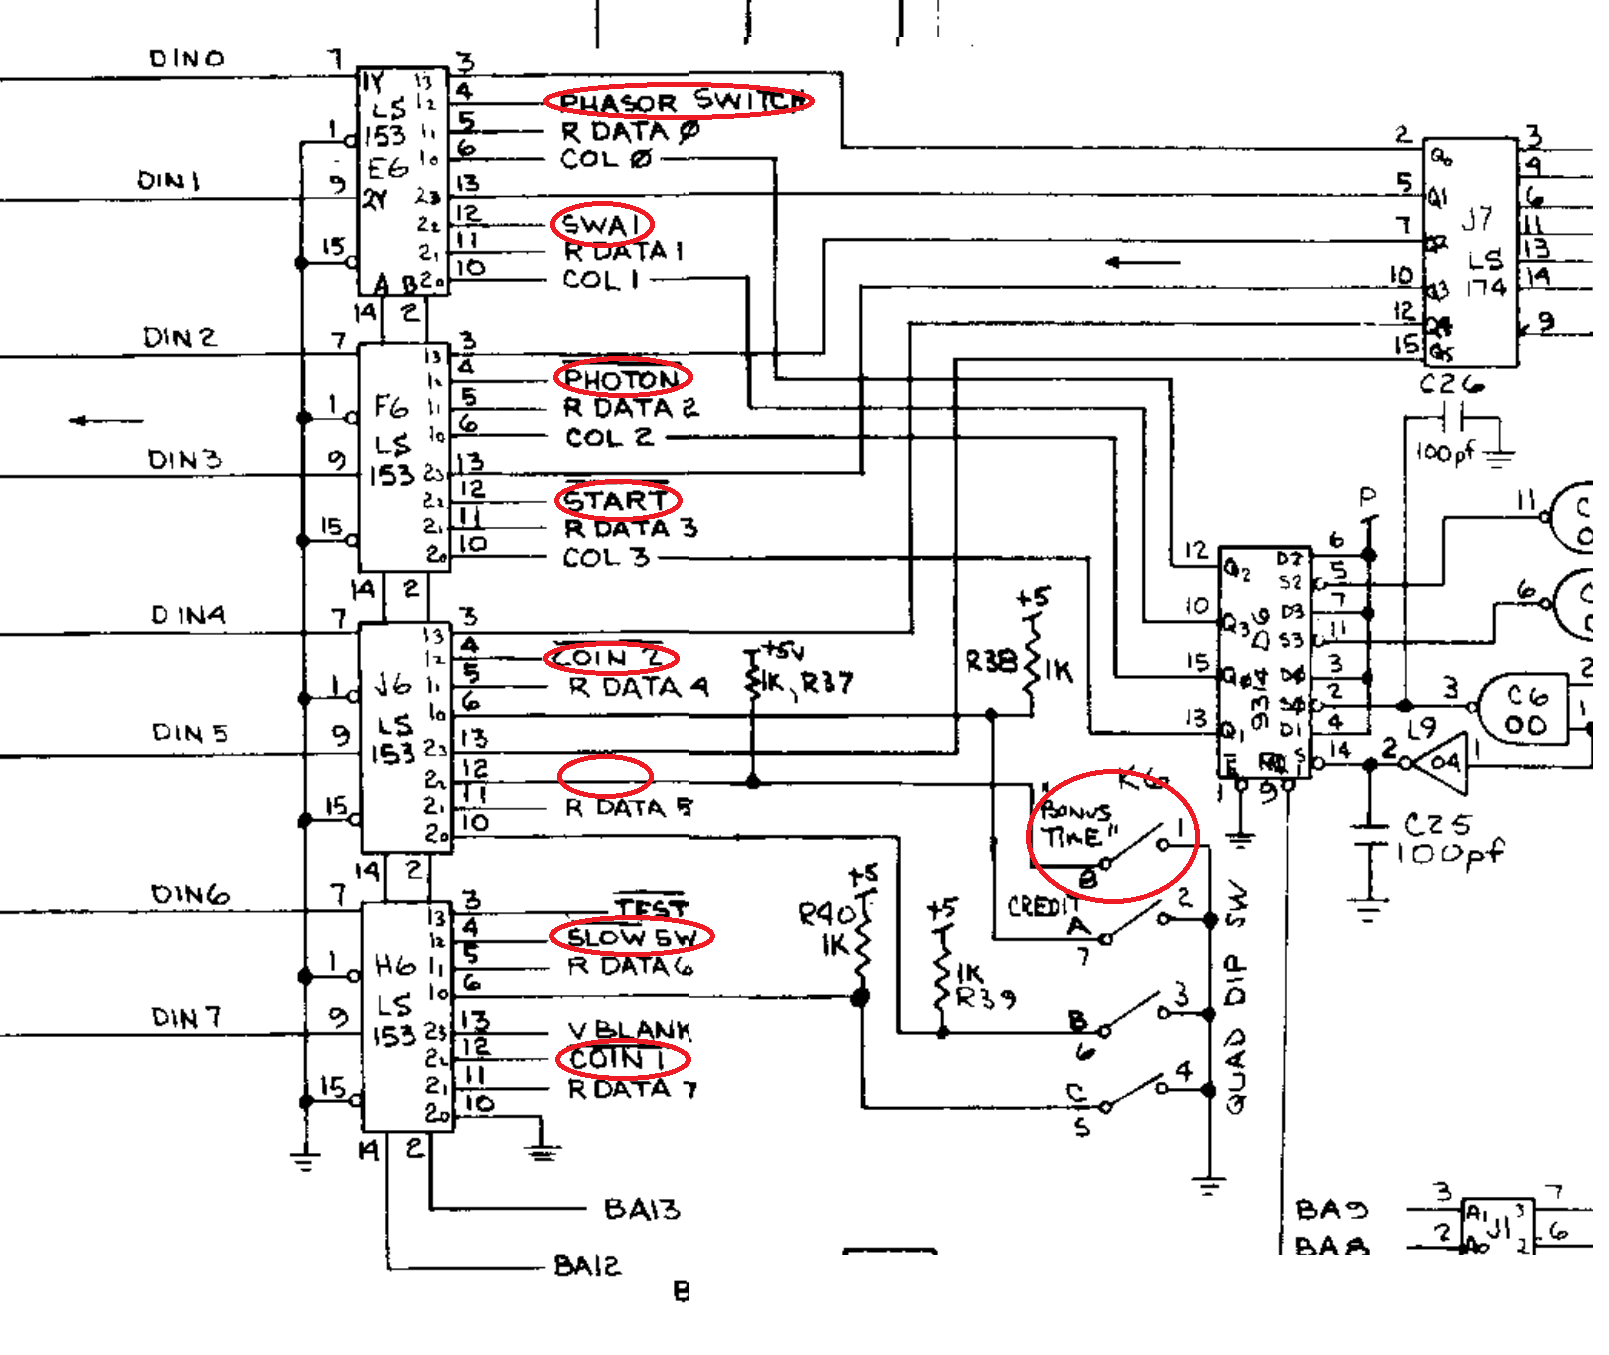 llv wiring diagram 88 read all wiring diagram Chevy S10 Fuse Panel